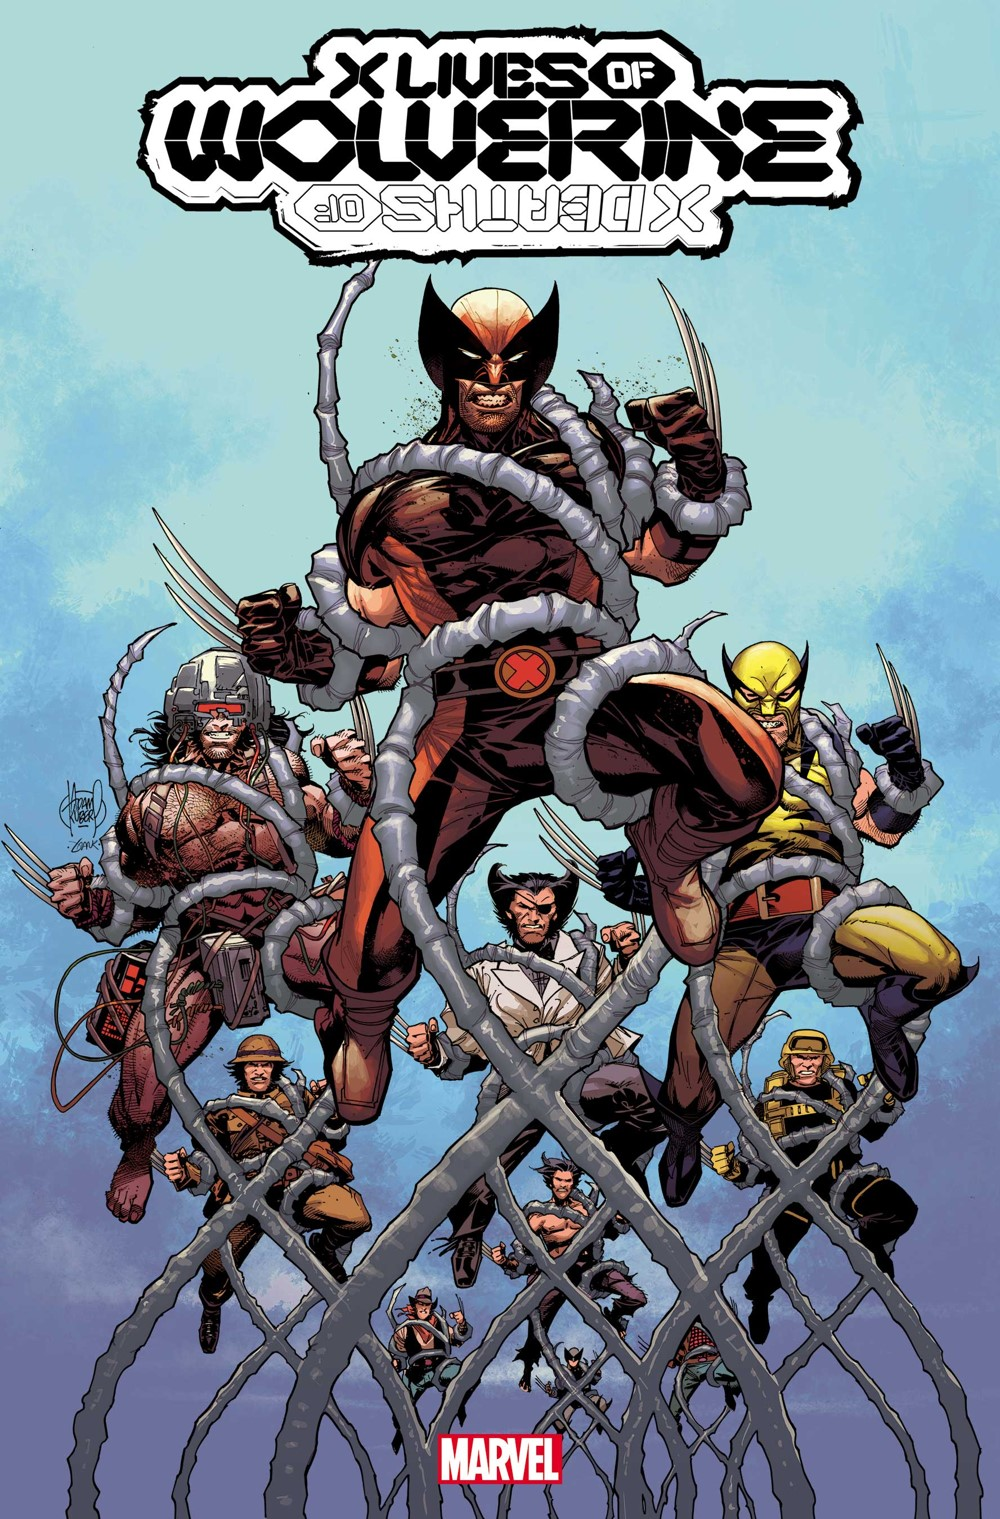 XLIVESWOLV2022001 Explore the X LIVES and X DEATHS of Wolverine this January